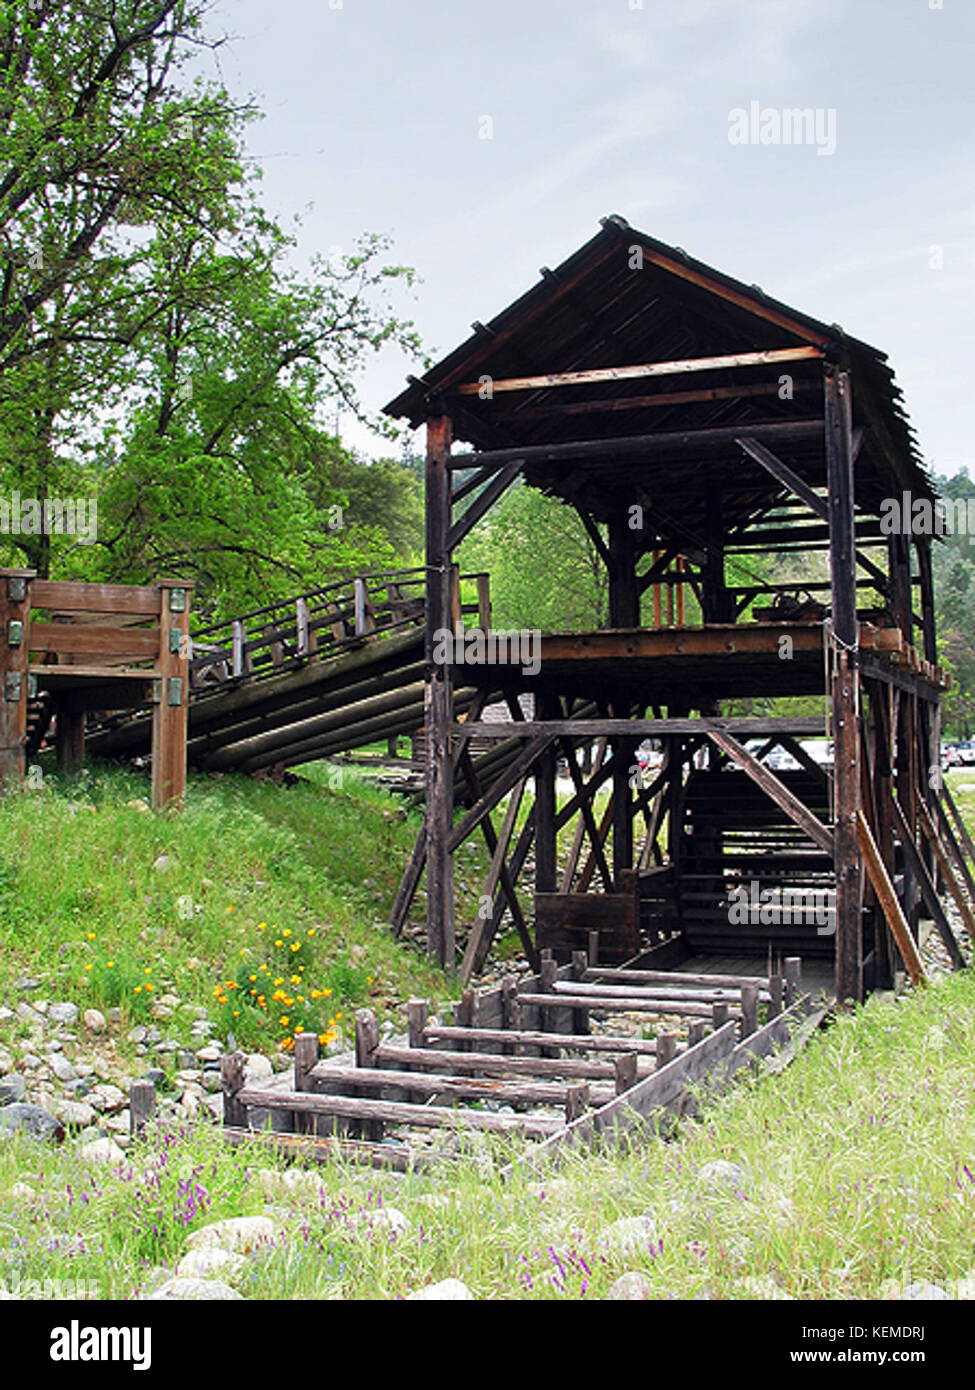 Sutters mill - Stock Image